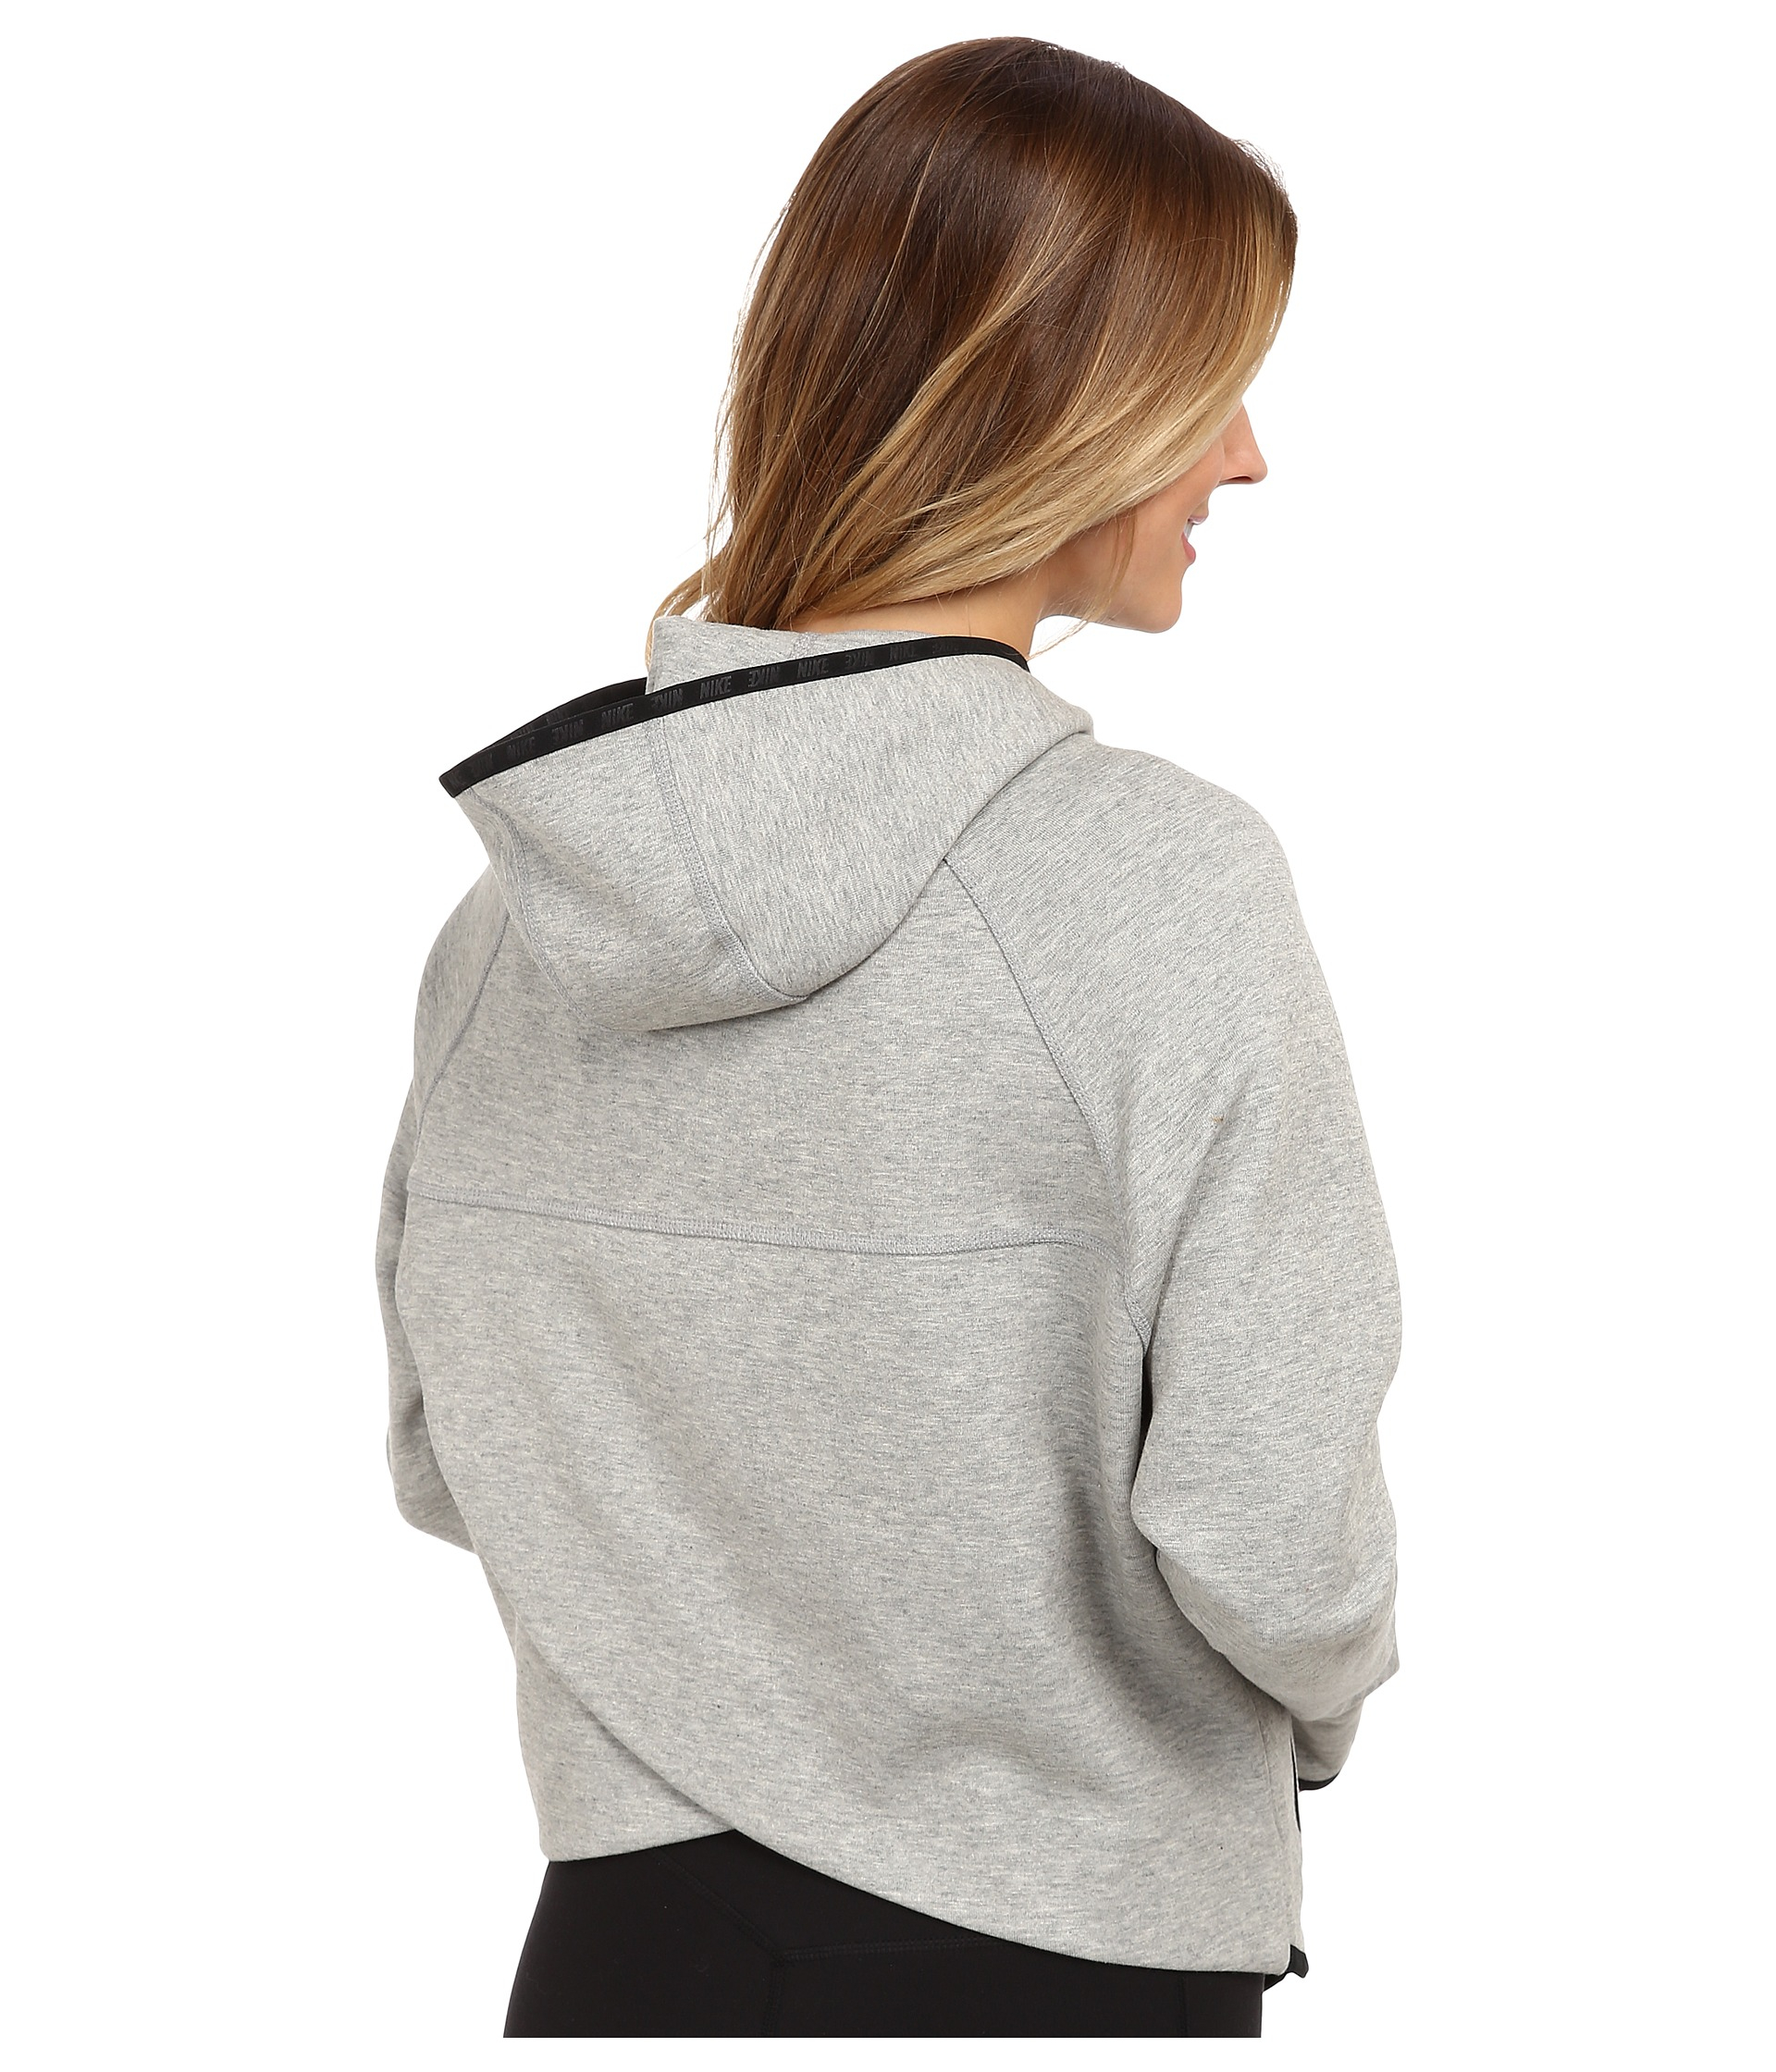 8b45e11963a9 Lyst - Nike Tech Fleece Butterfly Fz Hoodie in Gray